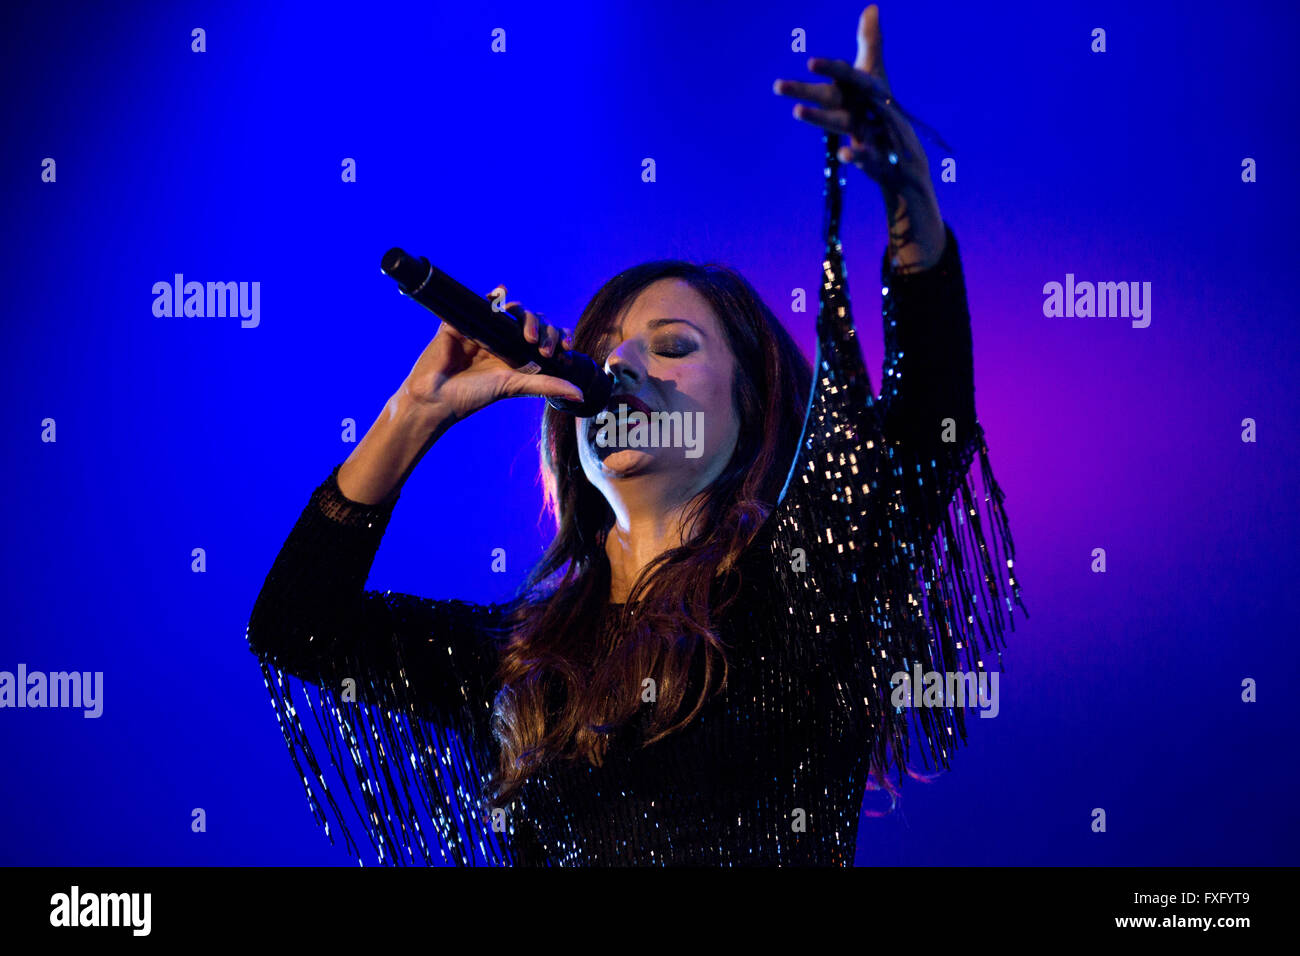 Porto, Portugal. 15th April, 2016. The fado singer Ana Moura performs live in Porto Colosseum during tour with her - Stock Image